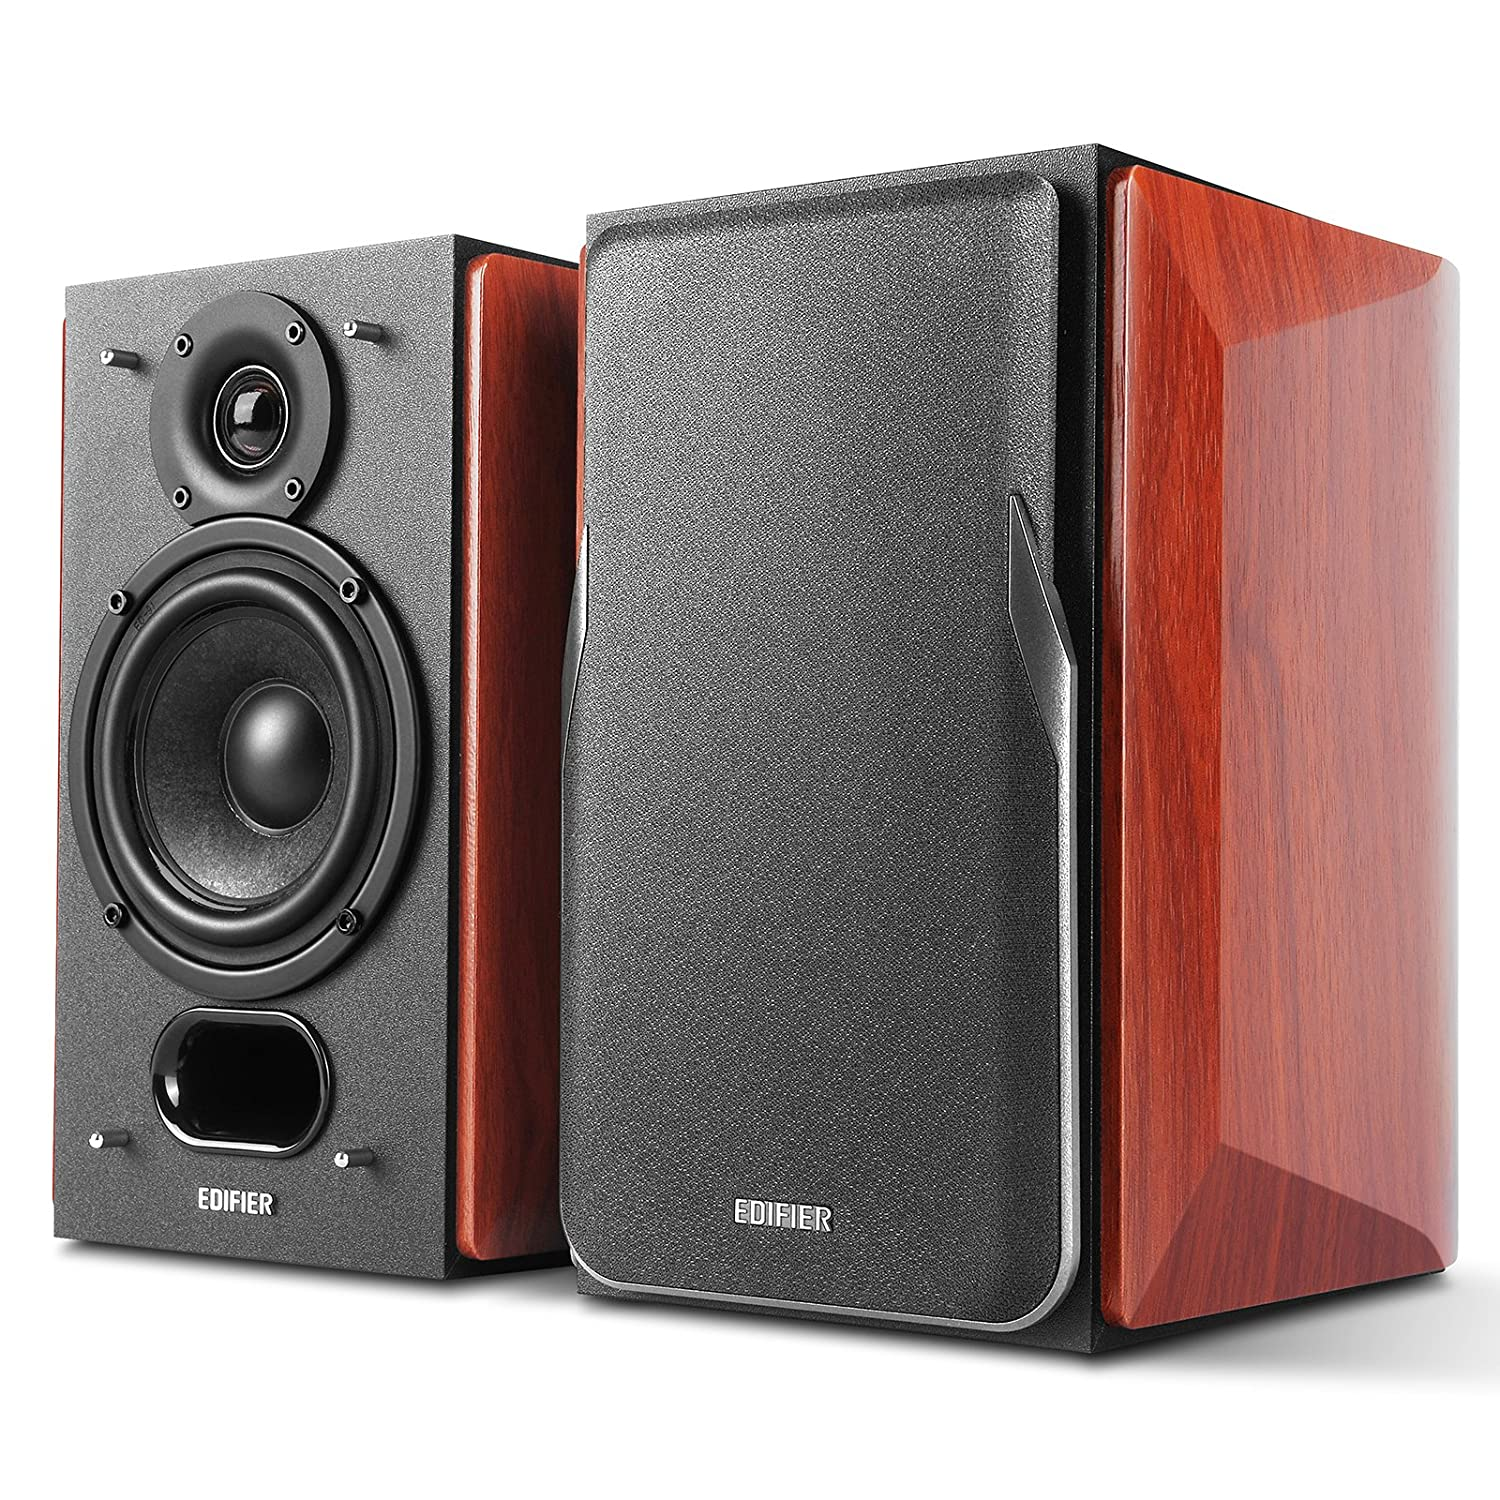 Edifier P17 Passive Bookshelf Speakers - 2-Way Speakers with Built-in Wall-Mount Bracket - Perfect for 5.1, 7.1 or 11.1 Side/Rear Surround Setup - Pair edifier-p17-brown